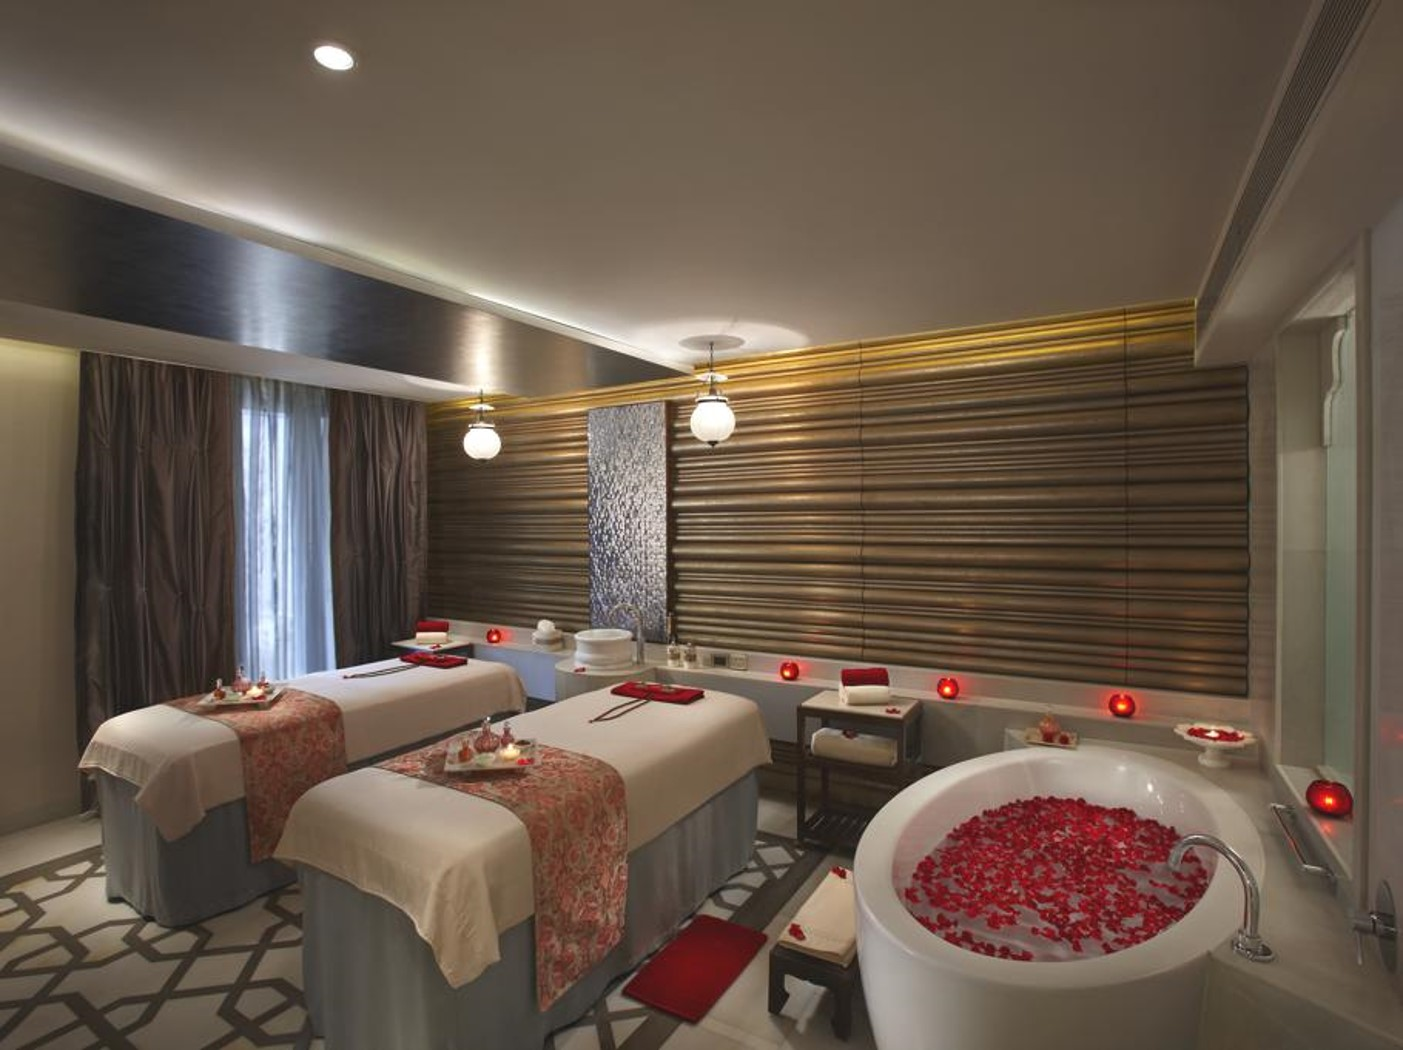 Interior design tips to make an awesome SPA